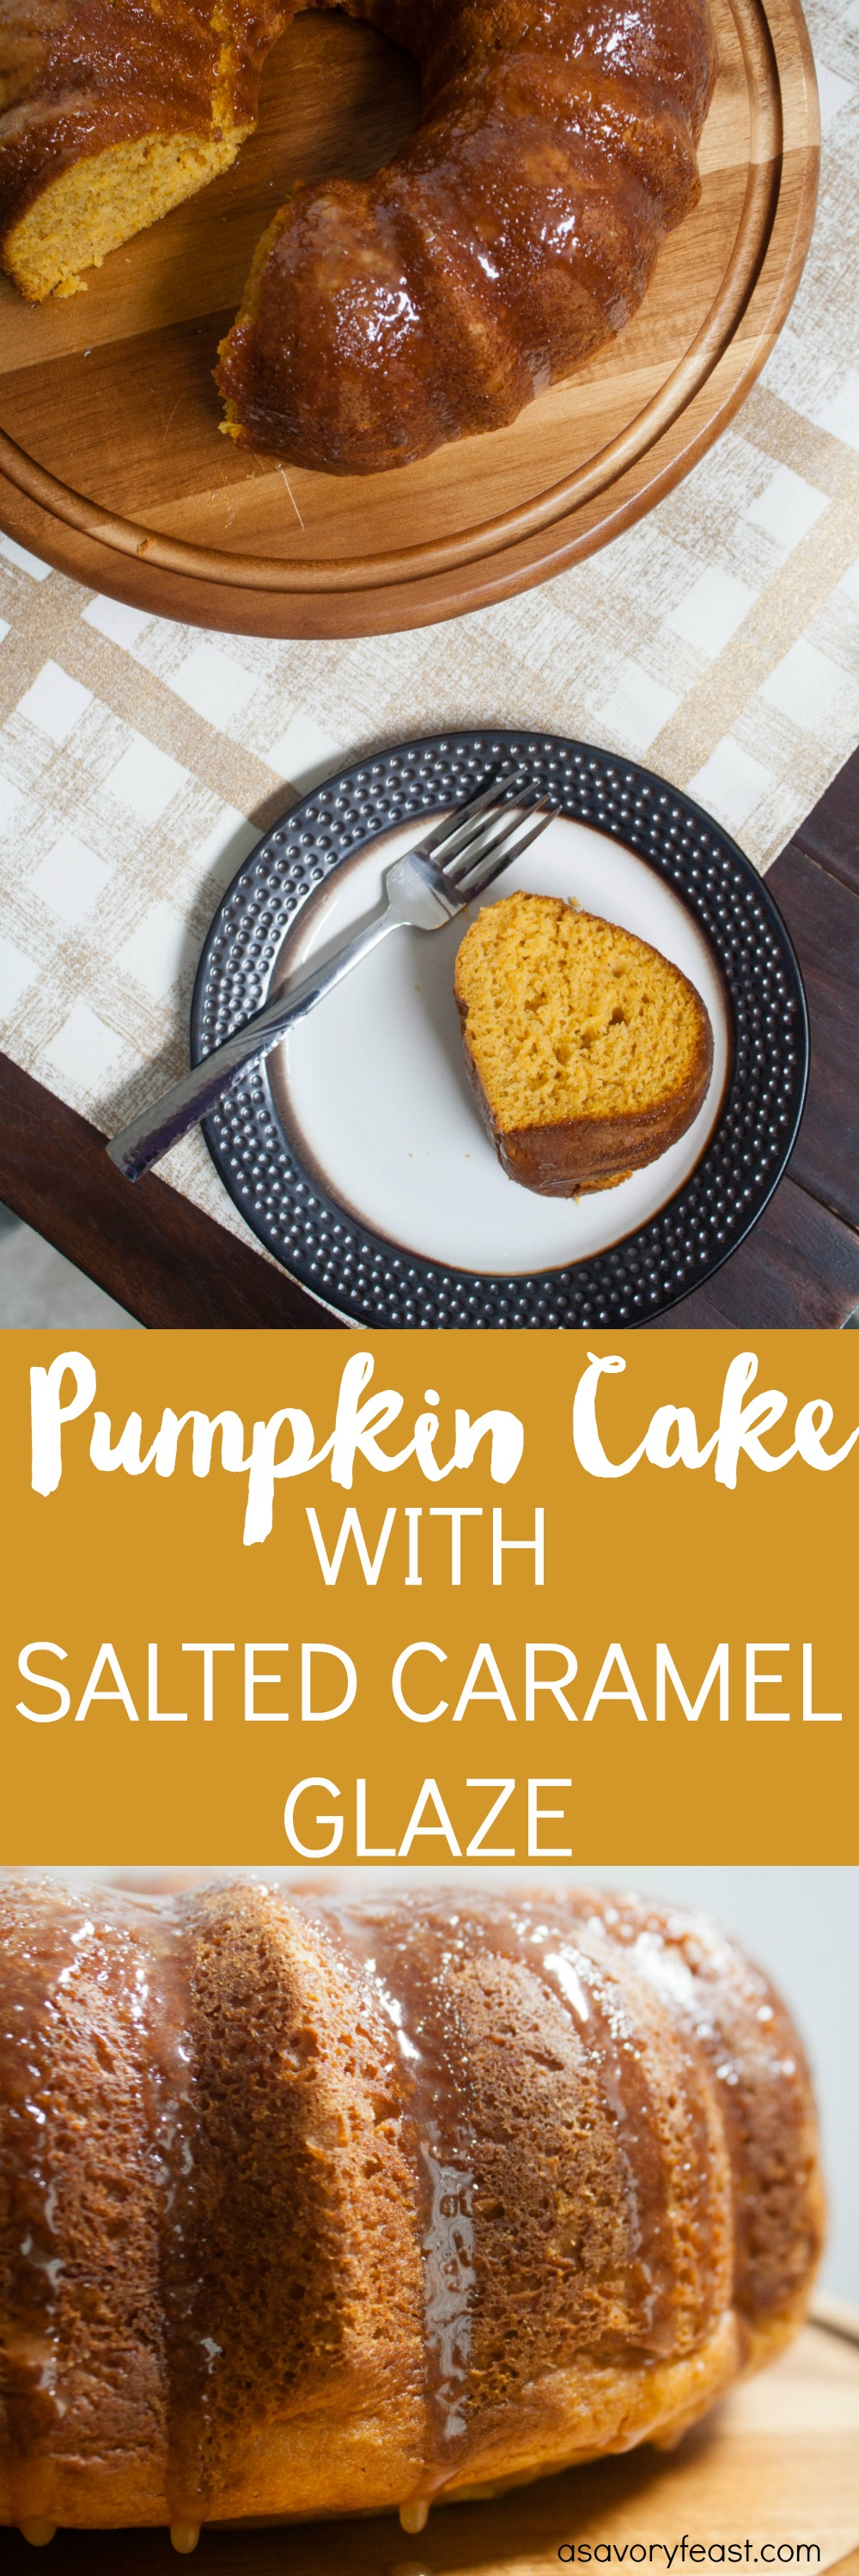 This cake is the ultimate Fall dessert! This Pumpkin Cake with Salted Caramel Glaze recipe dresses up a boxed cake mix and turns it into a easy pumpkin bundt cake. Next comes a homemade caramel glaze, all topped with sea salt. Get into the Fall baking spirit with this sweet treat!